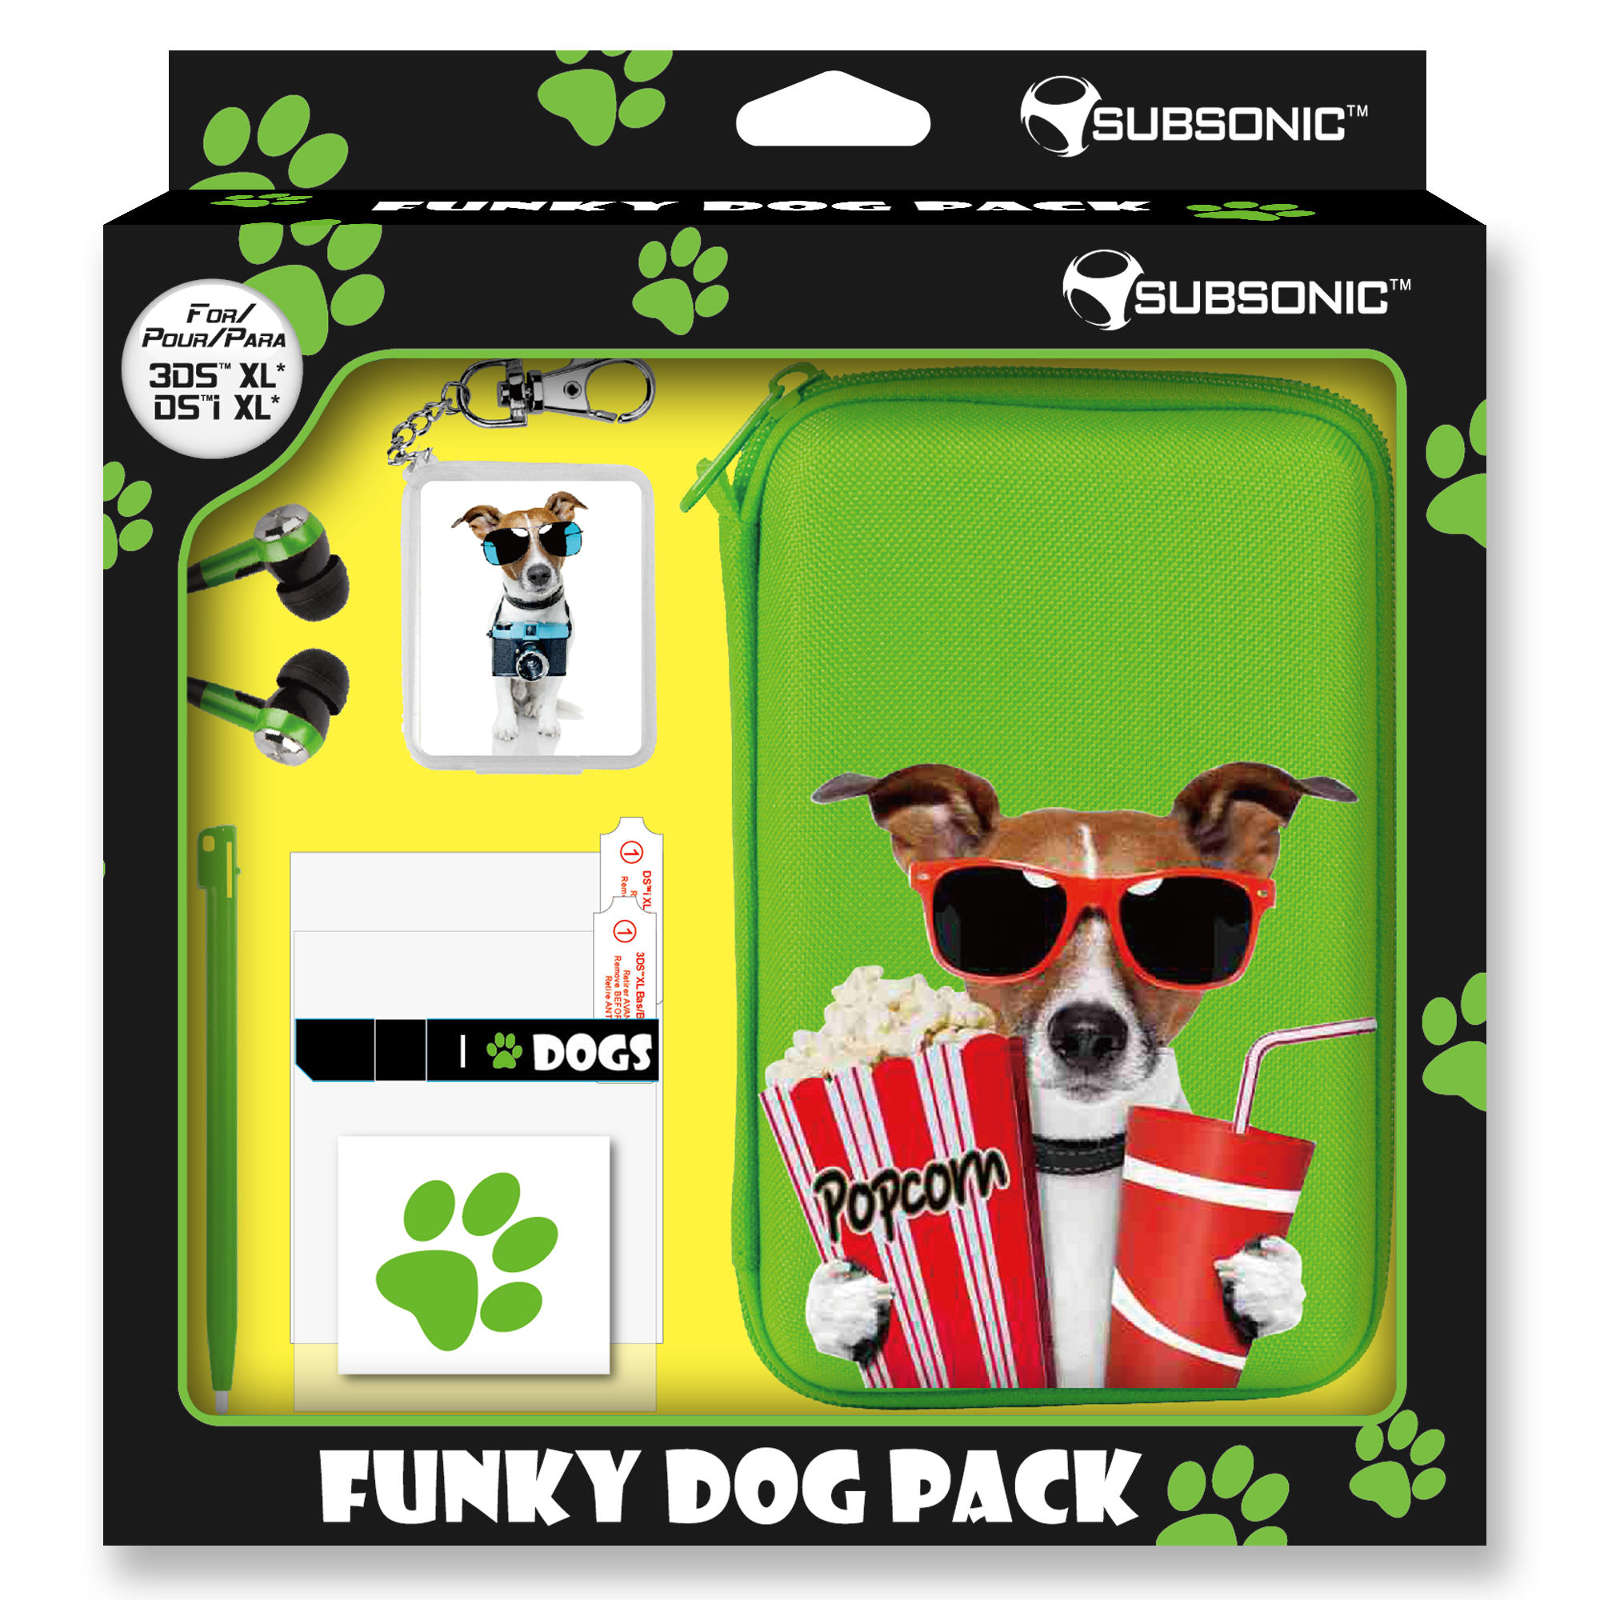 Subsonic funky animals dog green pack xl nintendo 3ds xl for Housse nintendo 3ds xl